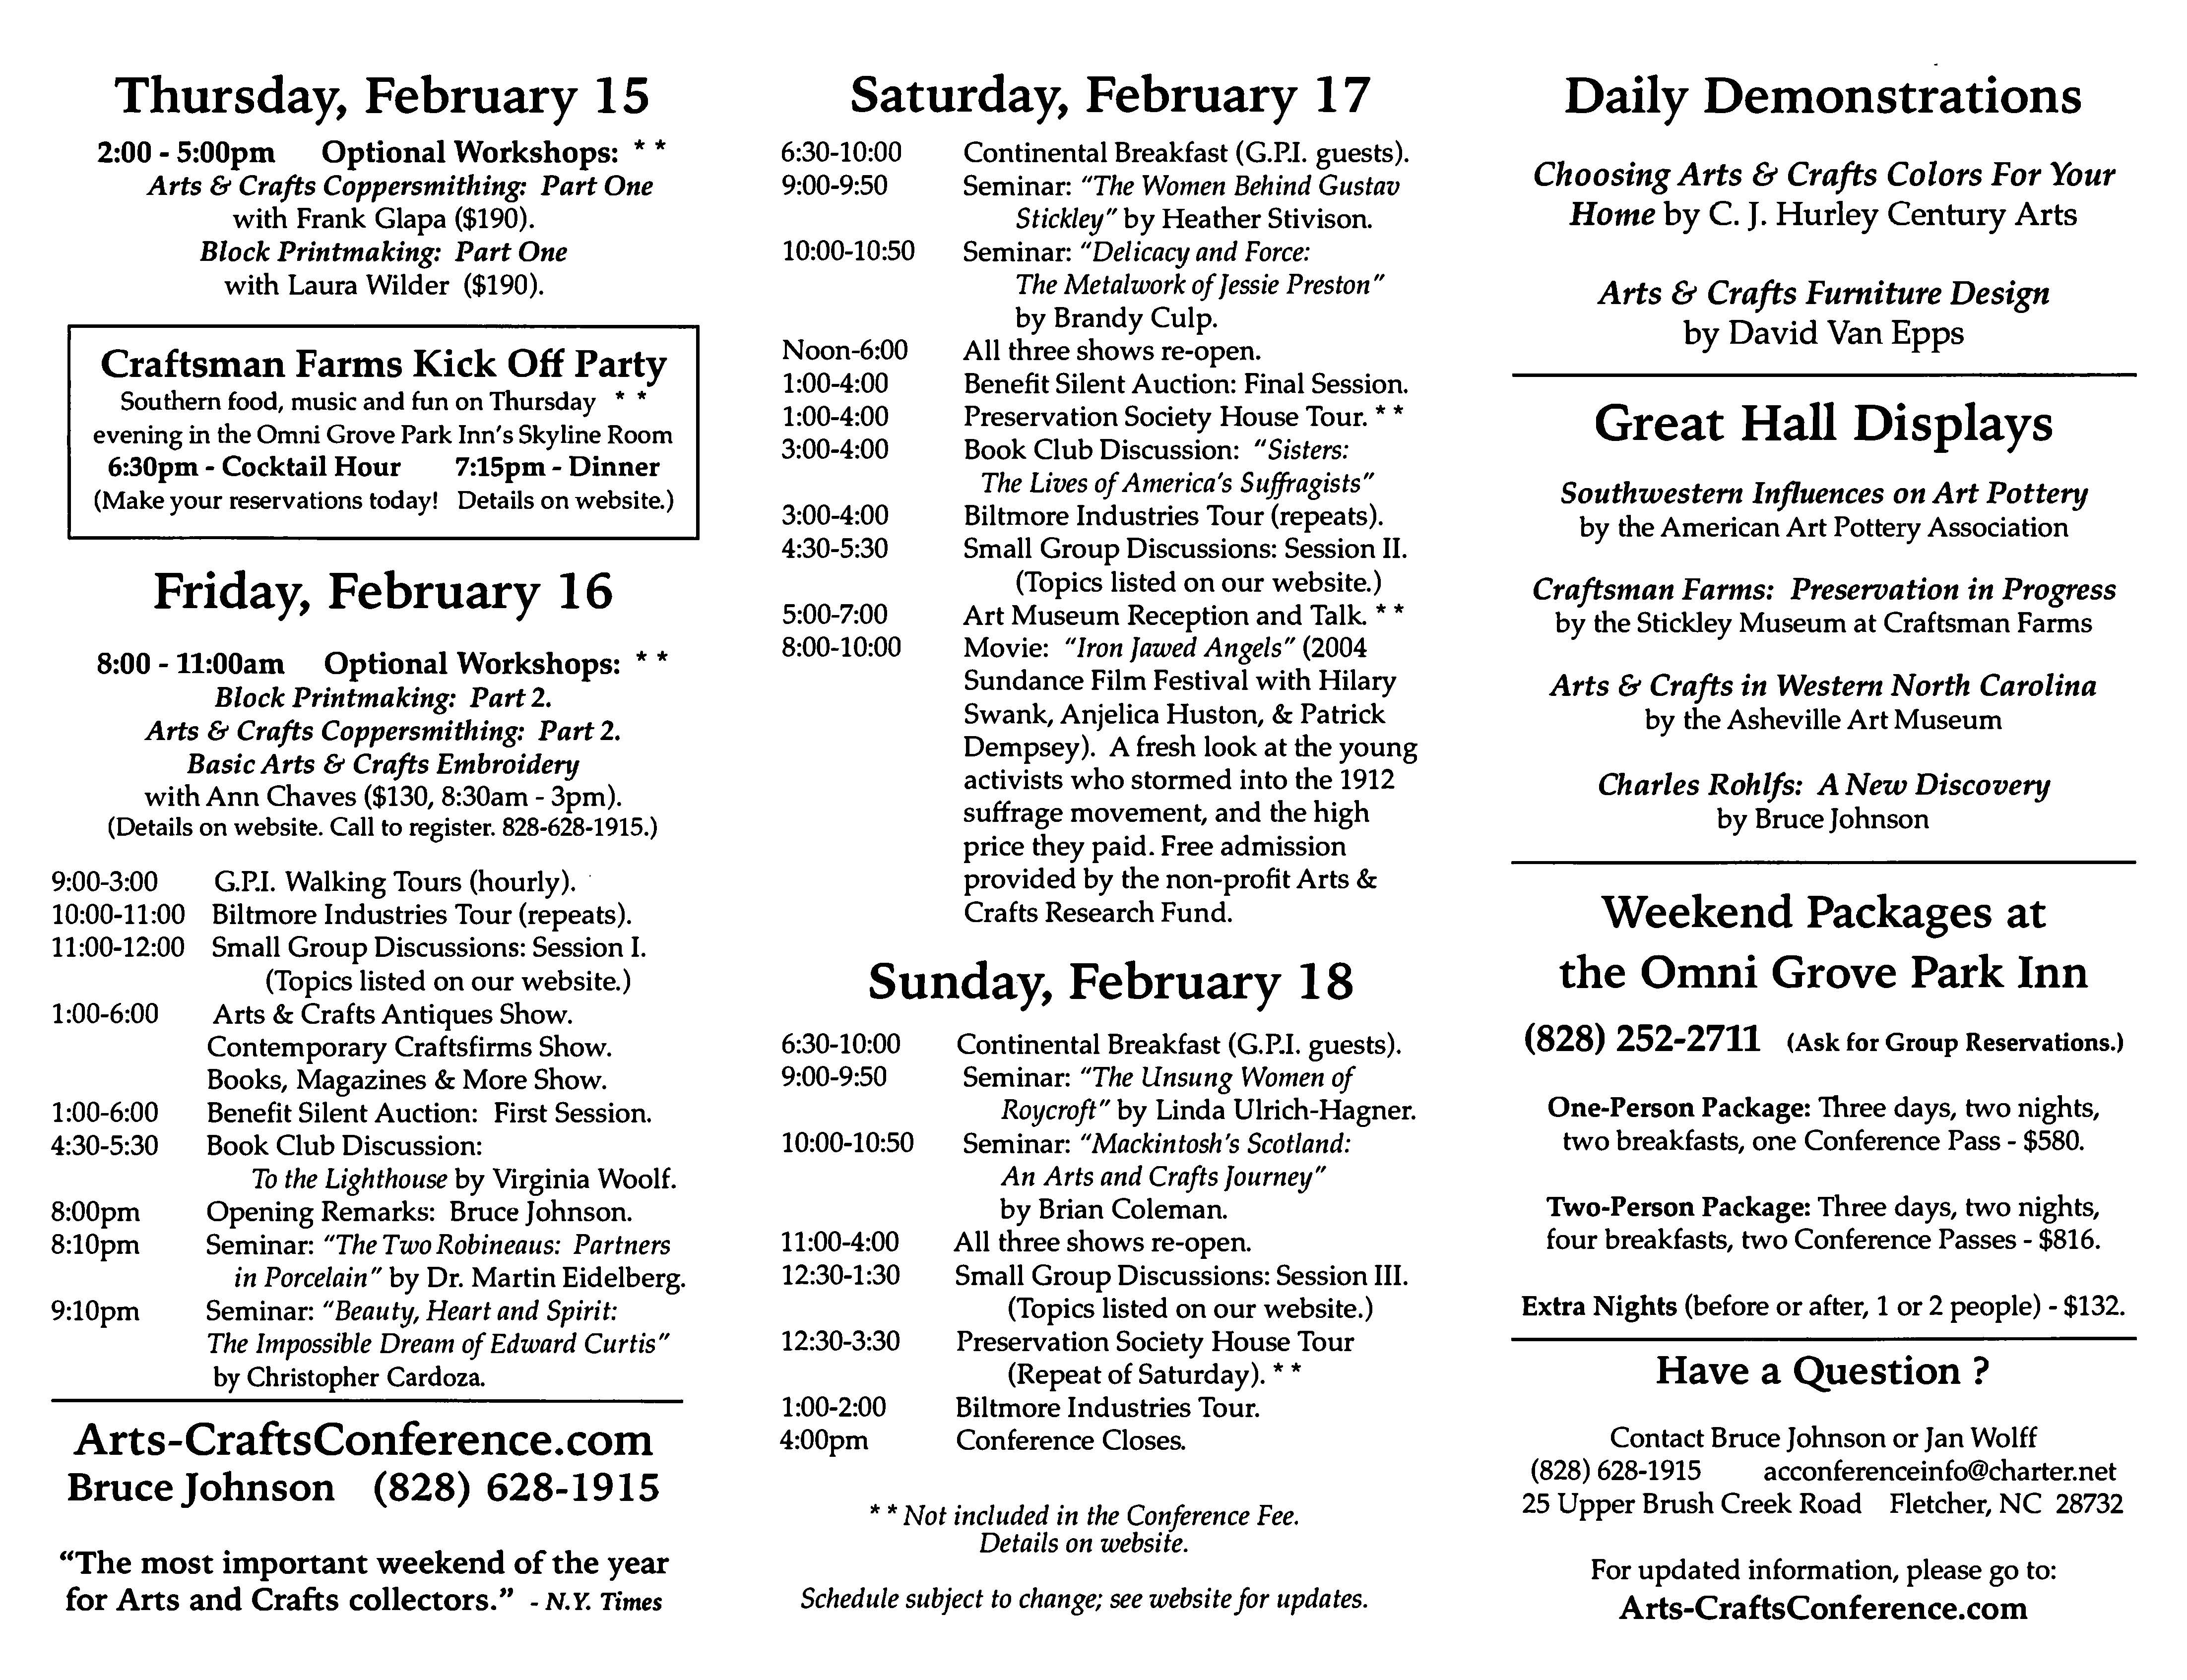 2018 Schedule for Asheville Arts & Crafts Conference